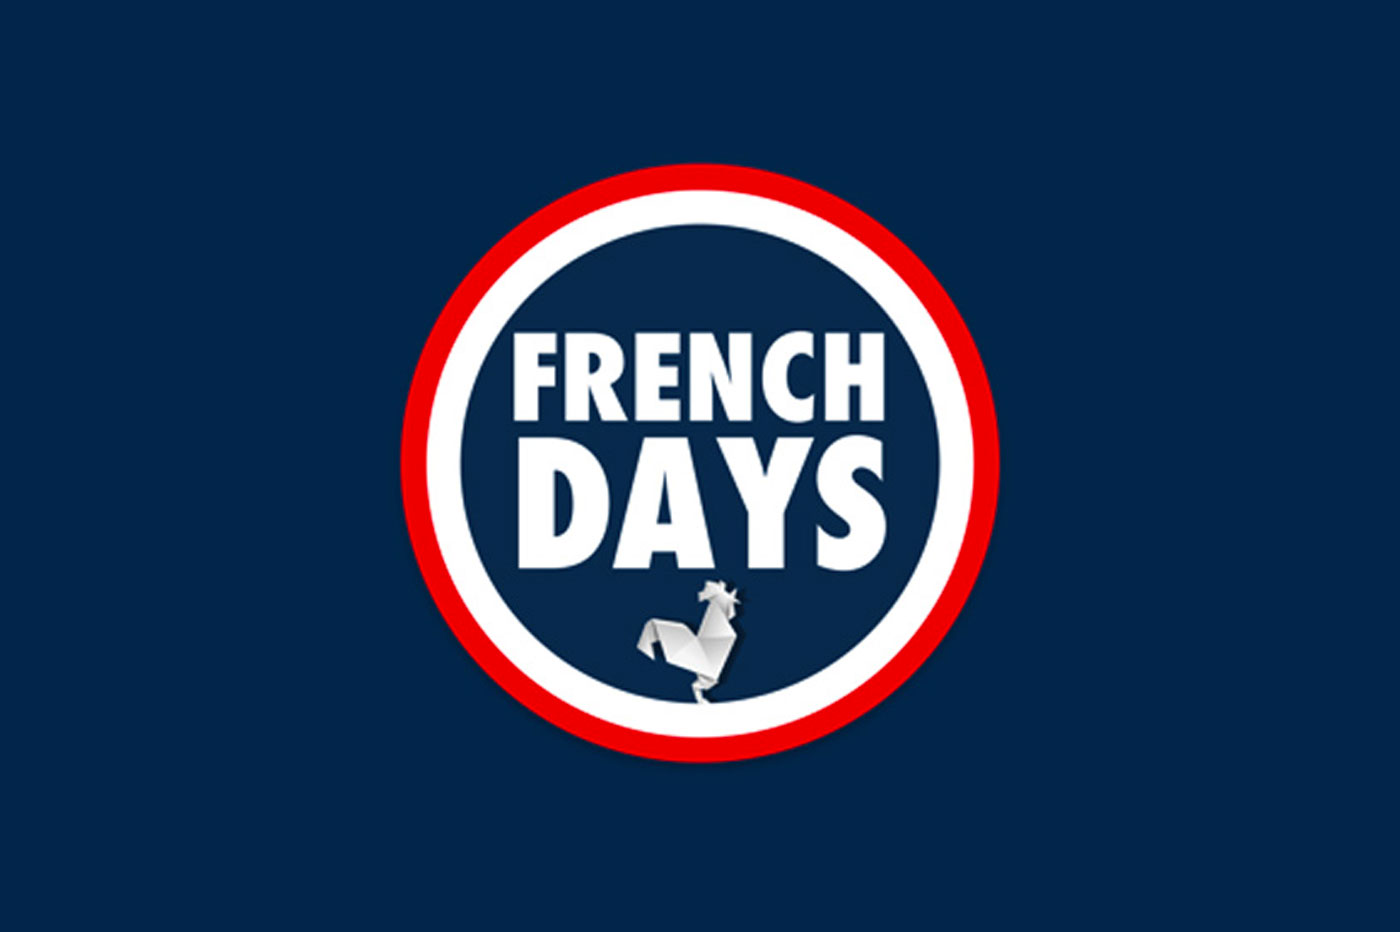 Les French Days 2019